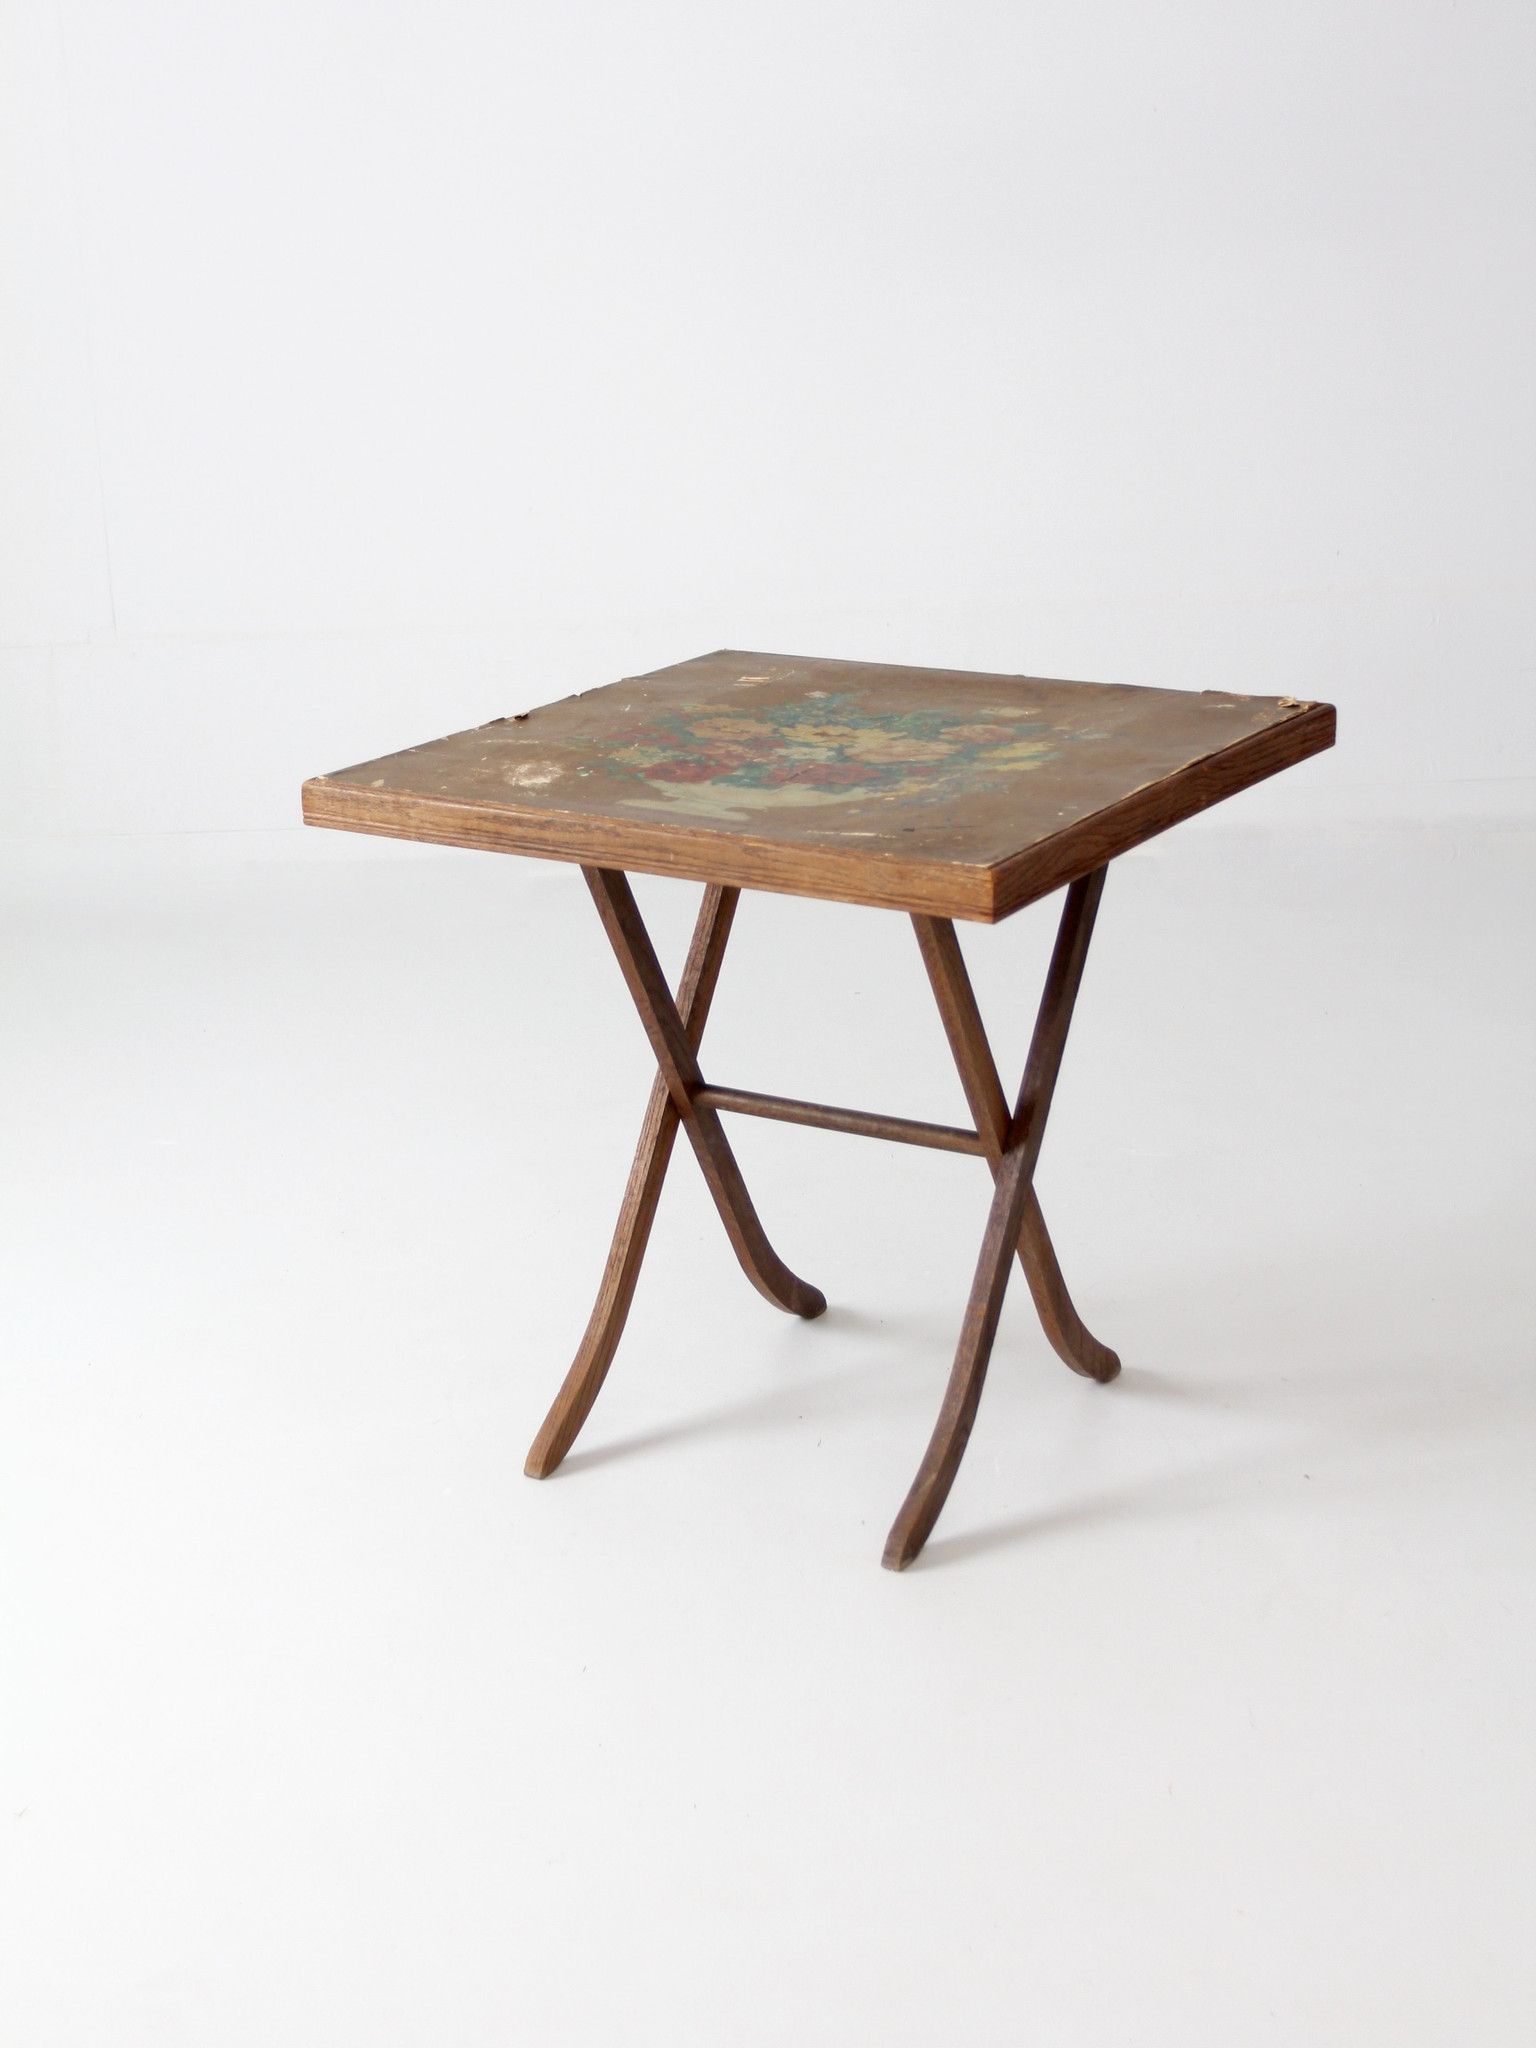 Vintage Wood Folding Table With Floral Top Wood Folding Table Vintage Wood Primitive Tables